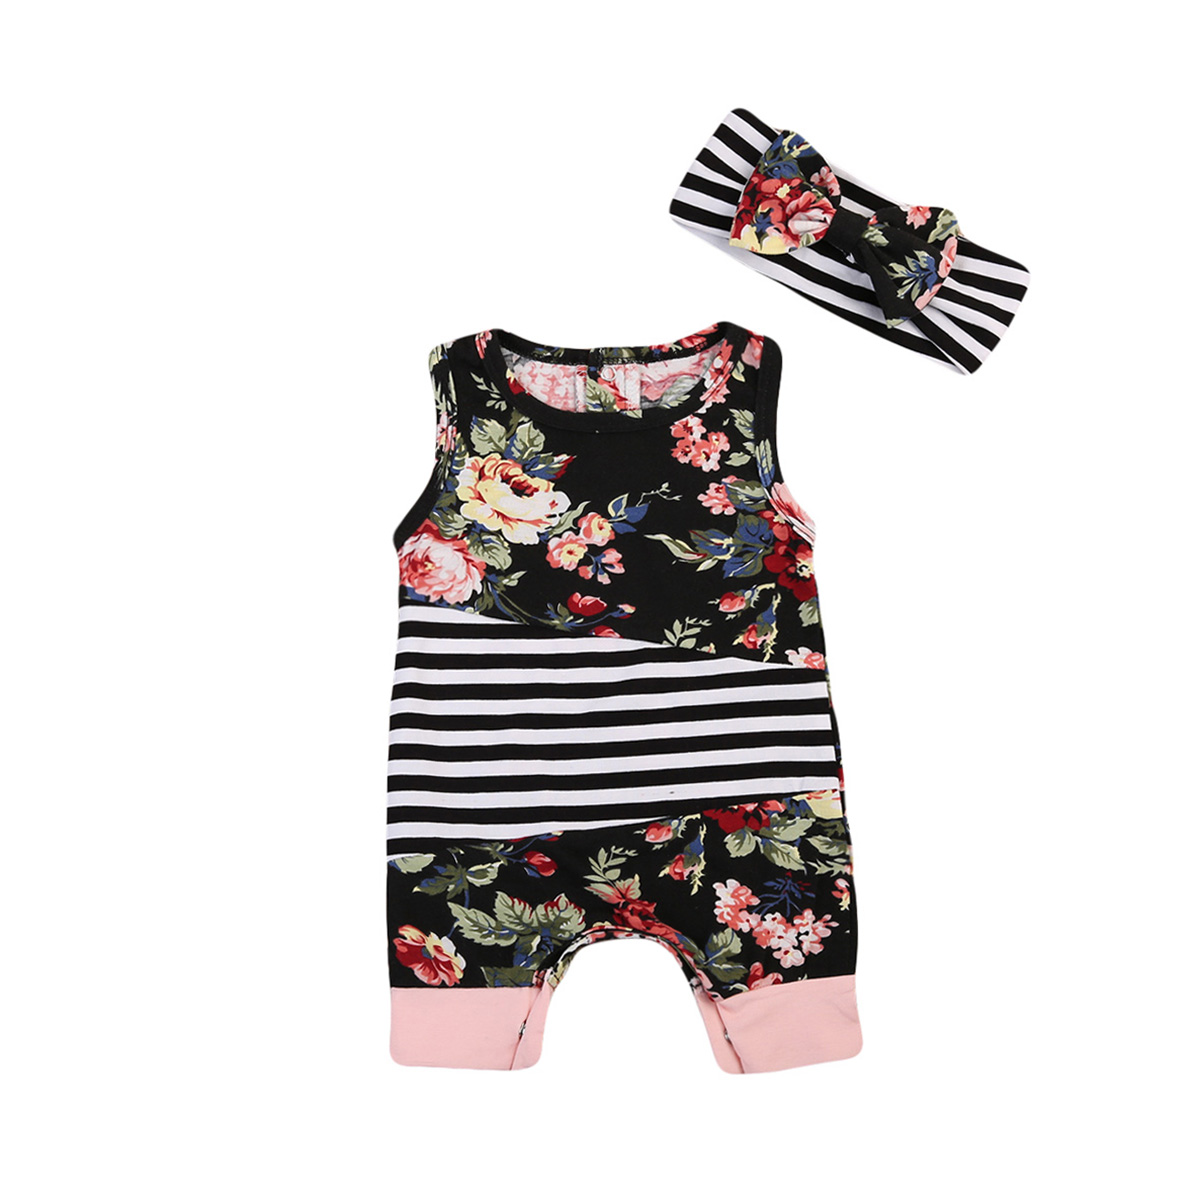 Newborn Baby Girls Floral Rompers Cotton Sleeveless Jumpsuit Headband Outfits Clothes Kids Clothing